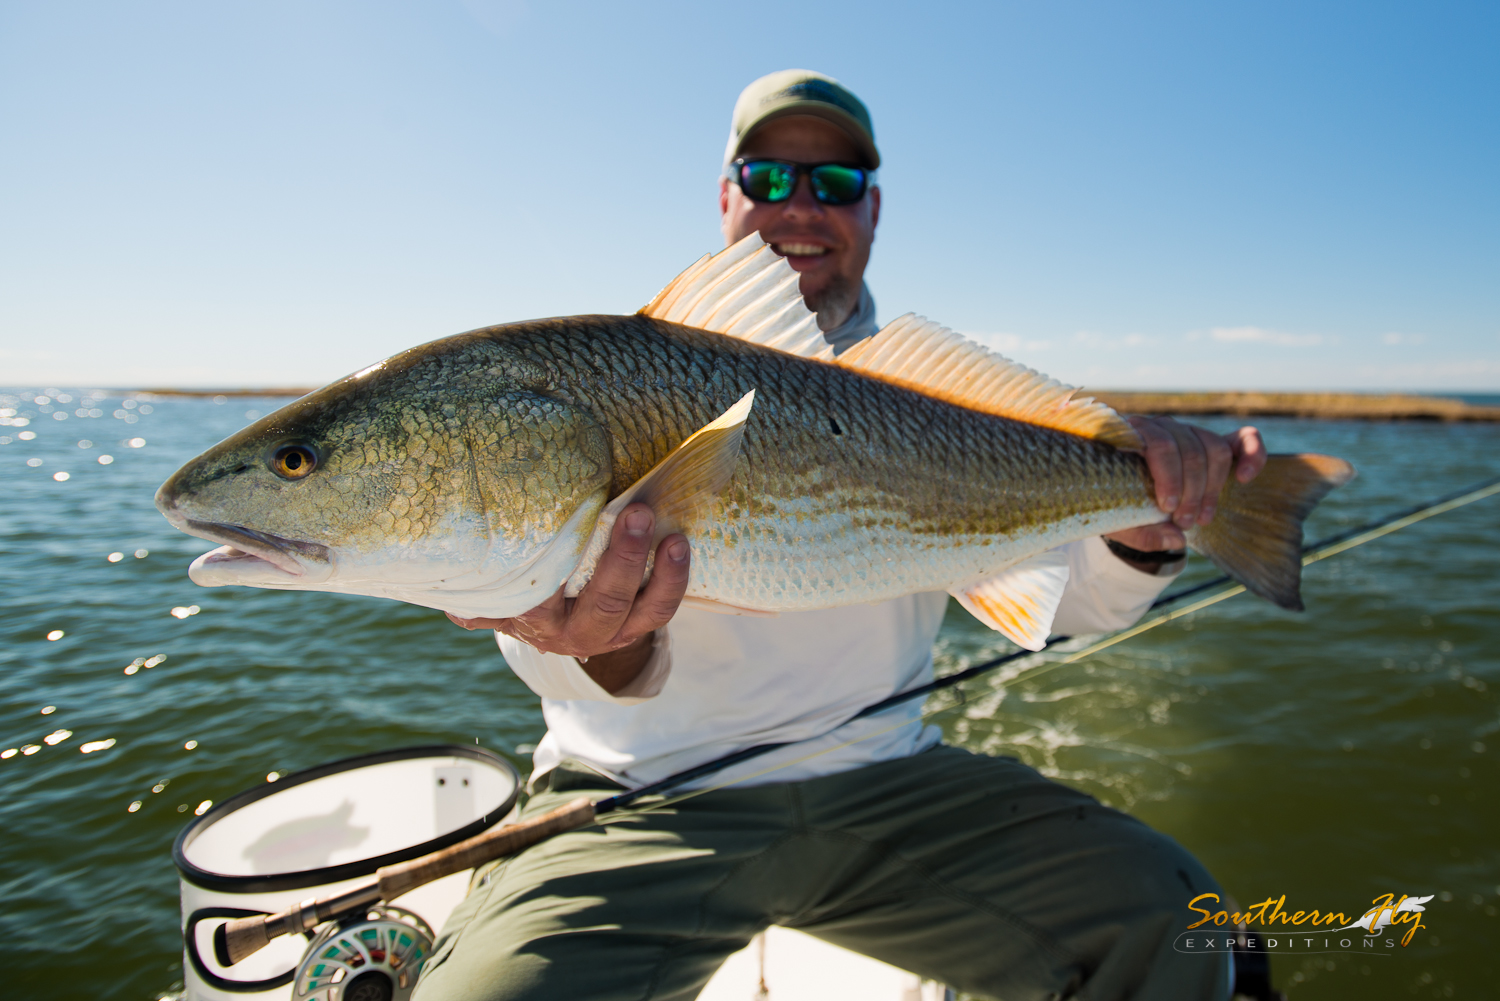 fly fishing new orleans la fishing charter guide Southern Fly Expeditions